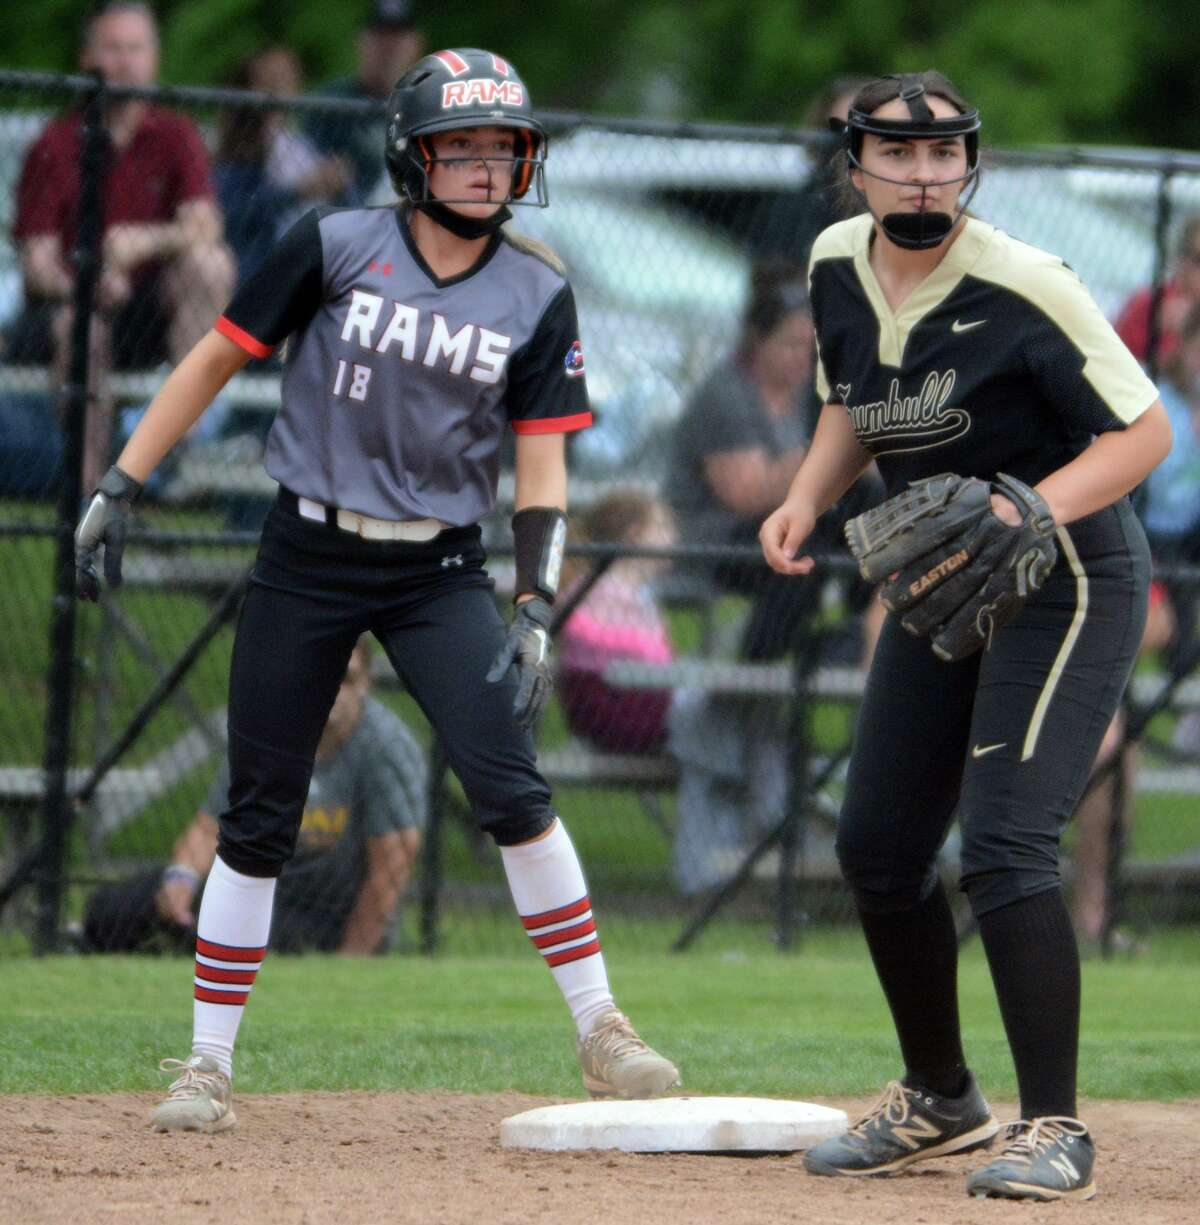 Cheshire's Grace Lurz (18) is held on at third base by Trumbull's Lianna Weaver during a second-round Class LL softball game on Wednesday in Cheshire.